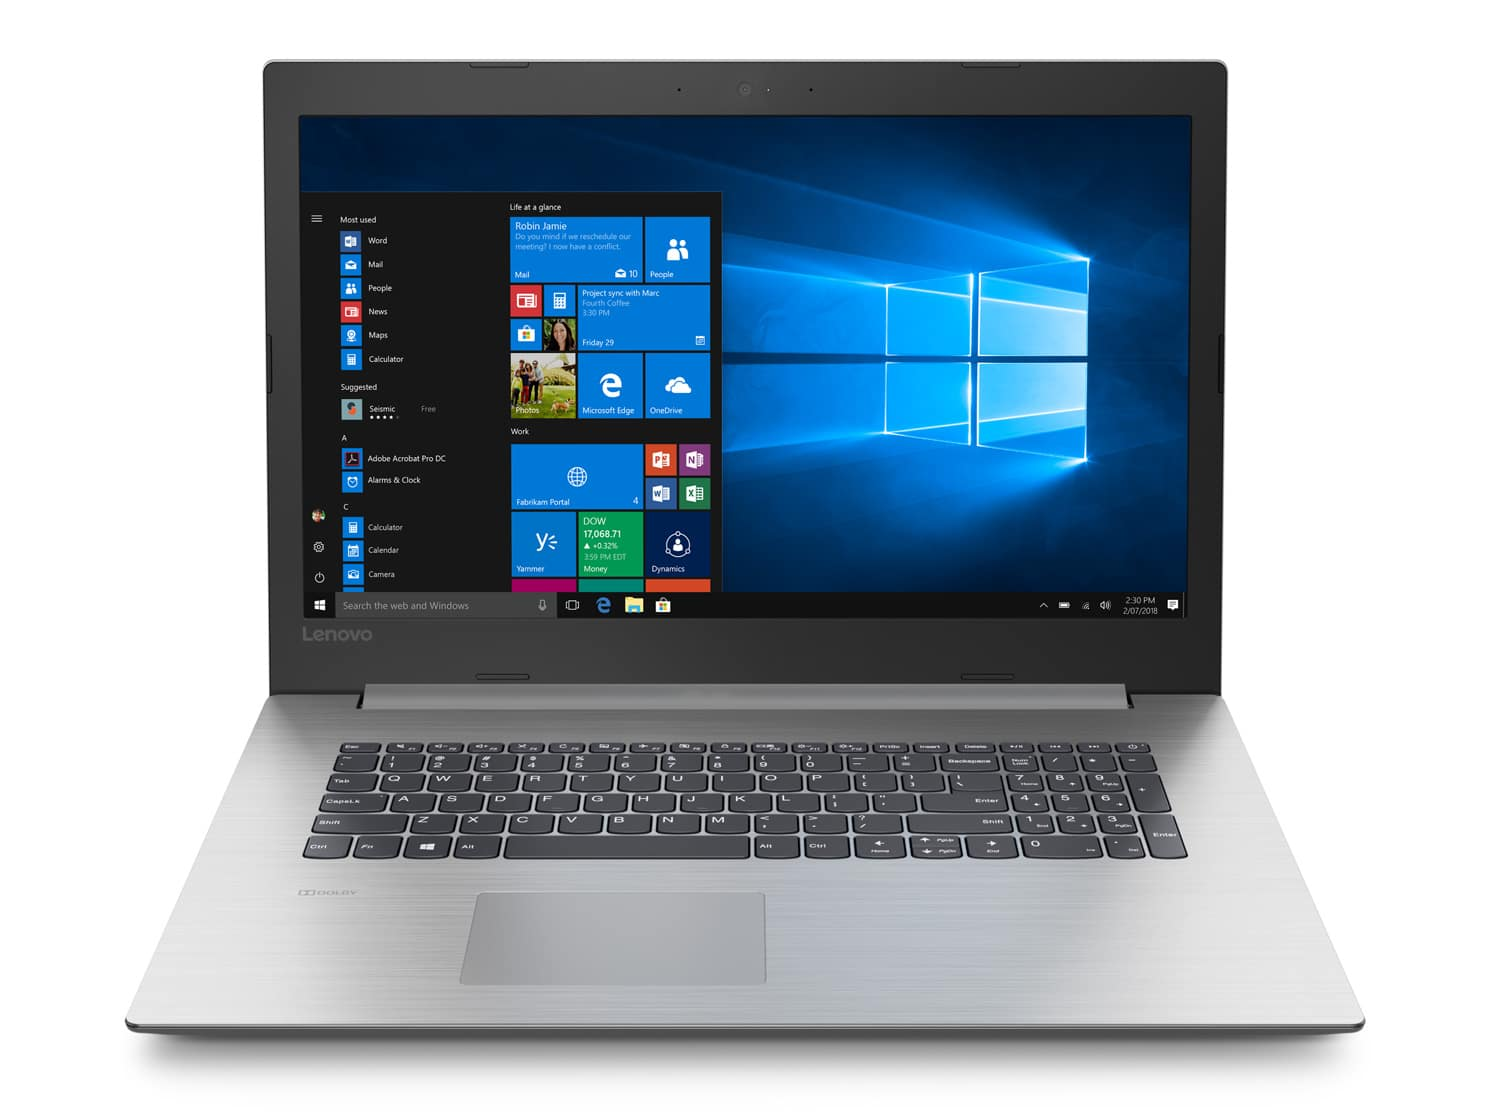 "Lenovo 330-17IKBR, PC portable 17"" mat SSD+1 To Quad i7 Radeon (799€)"